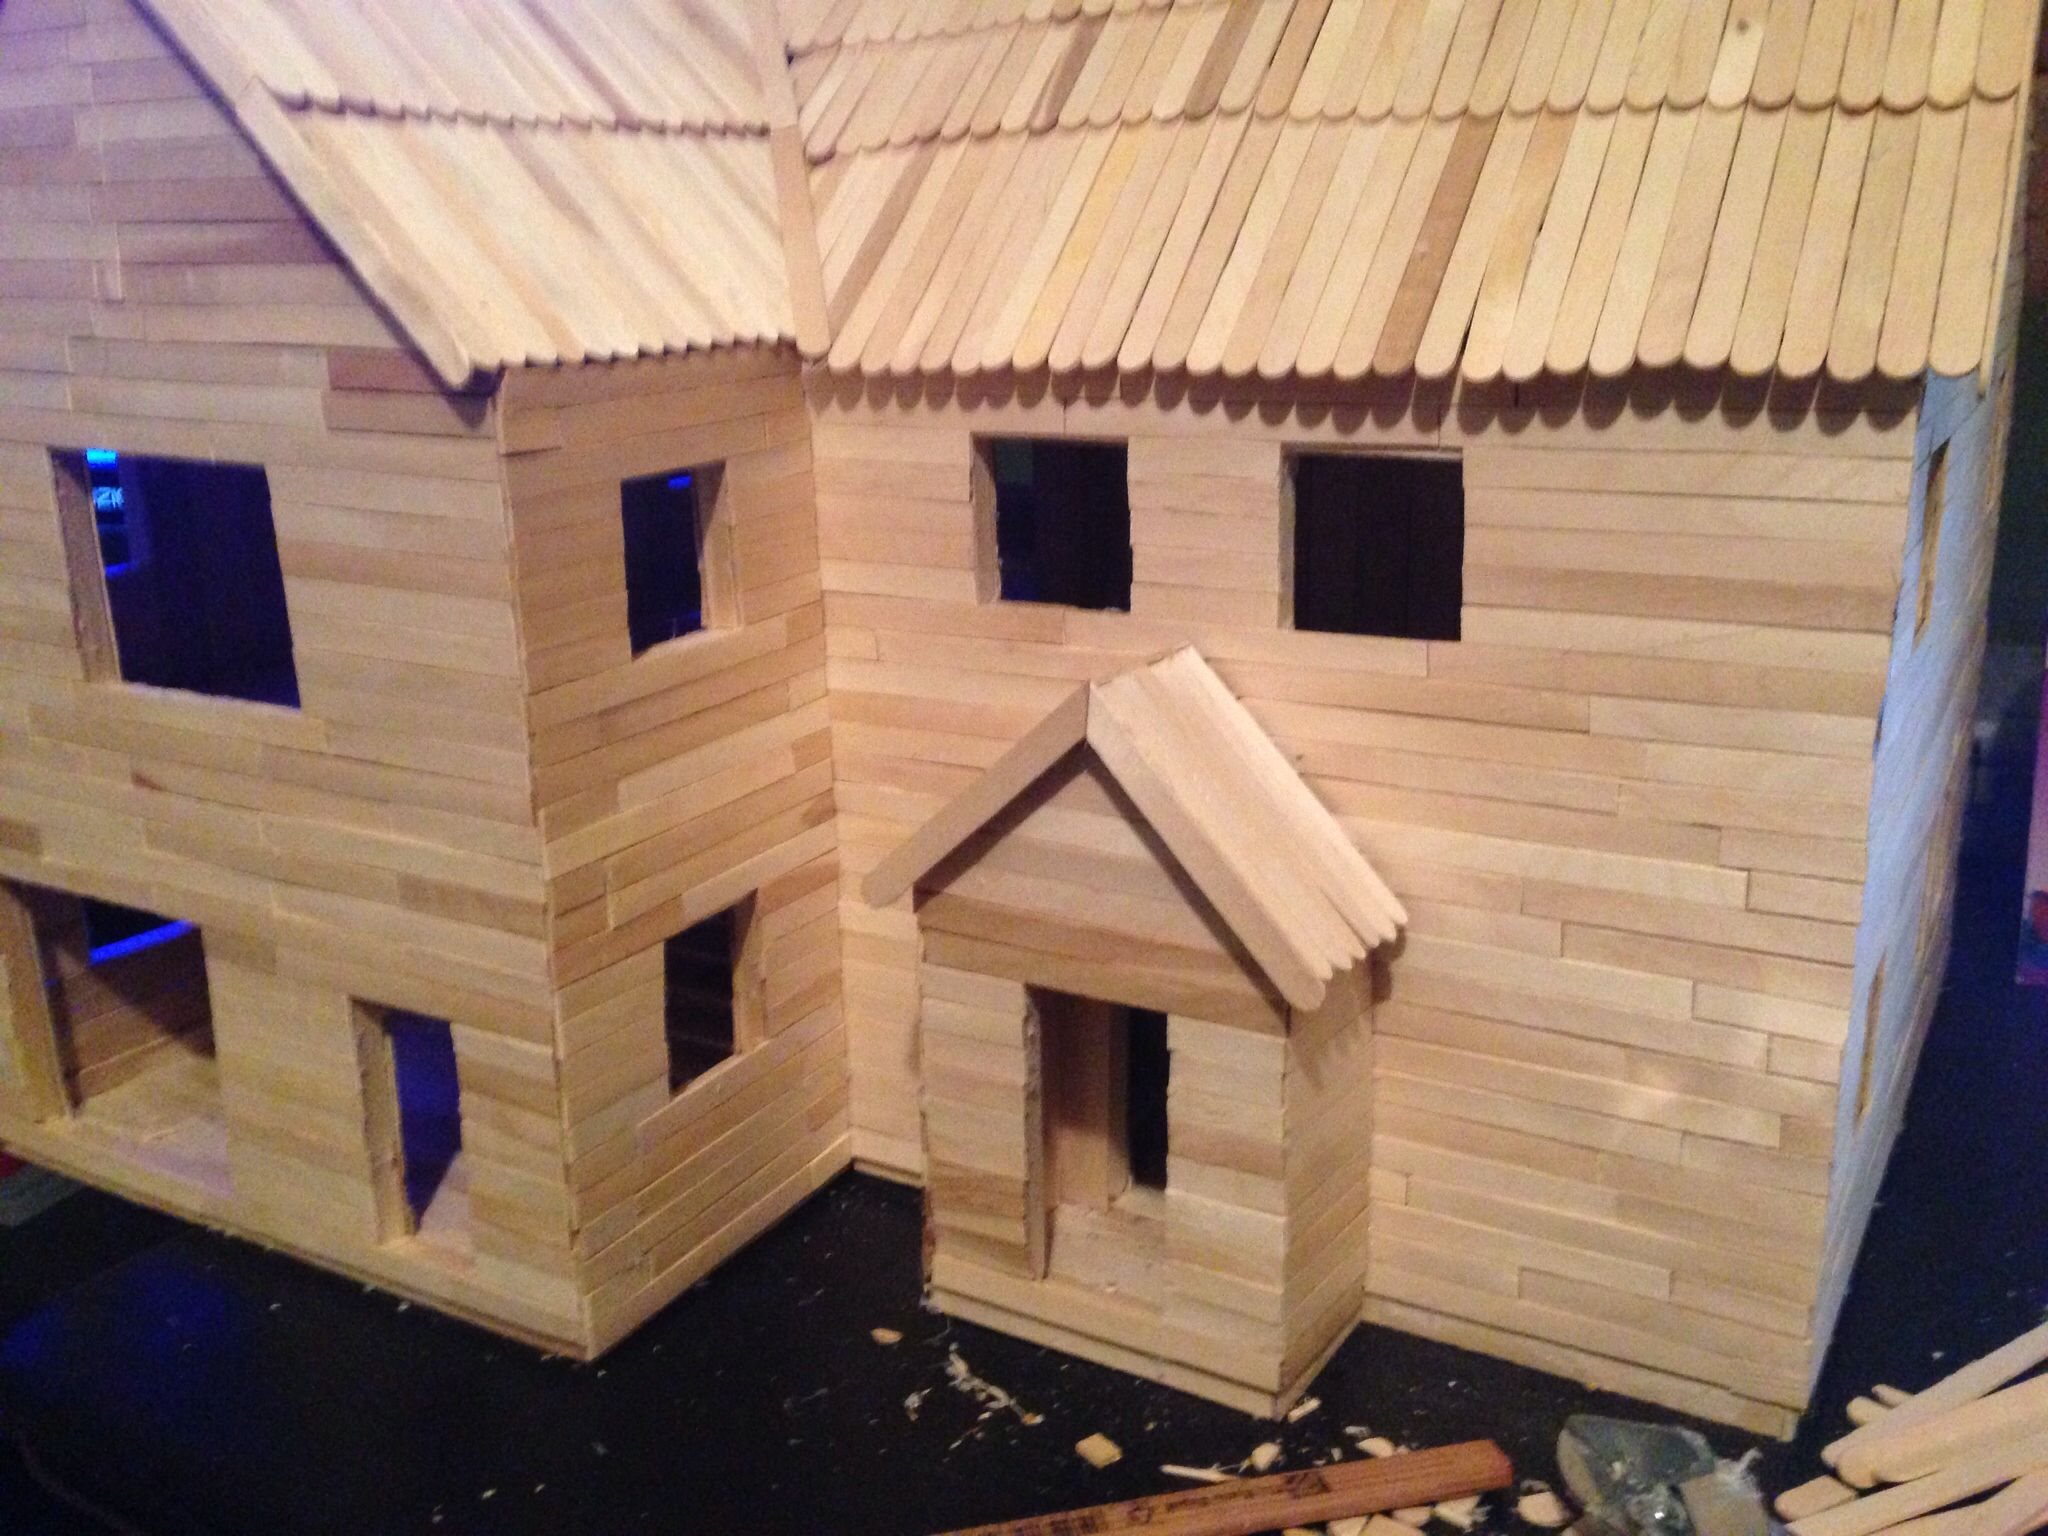 Popsicle stick church craft - Popsicle Stick House